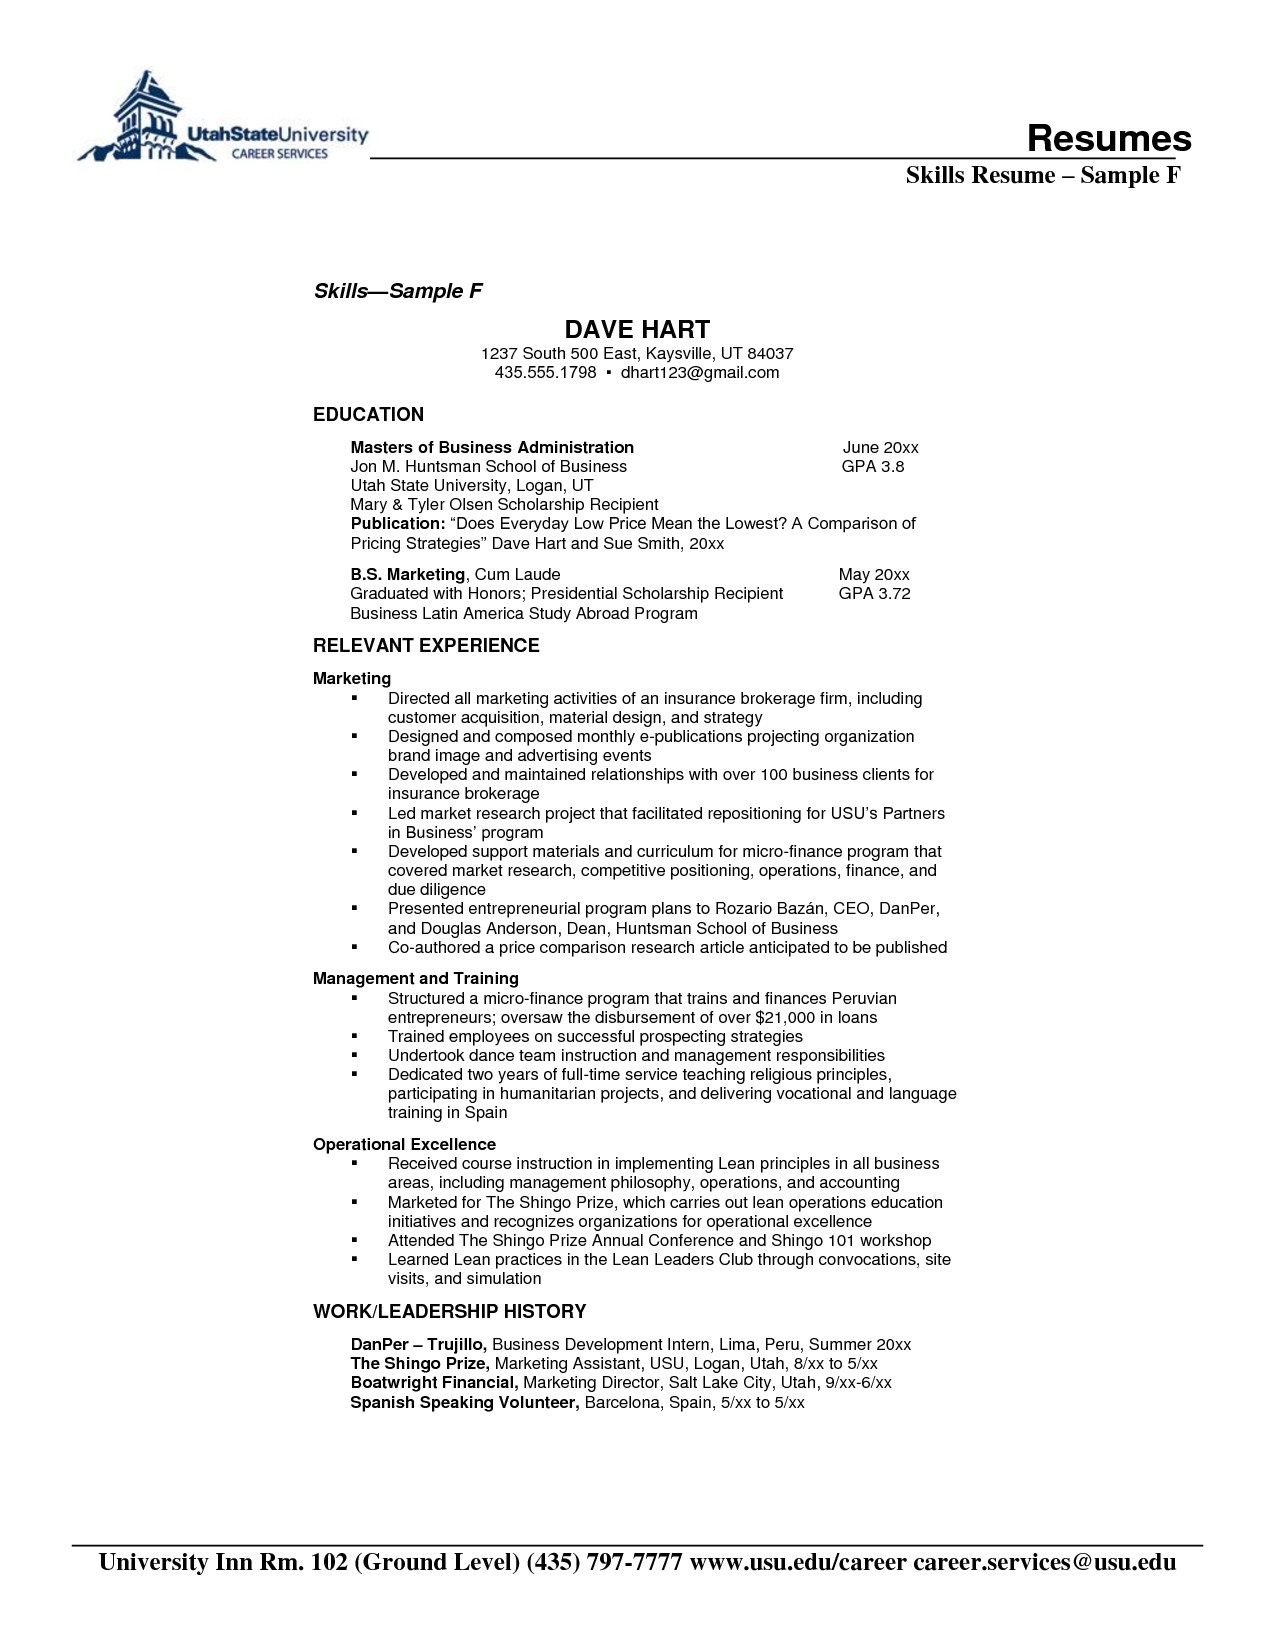 Sample Skills for Resume What is the Meaning Of Key Skills In Resume Resume Ideas